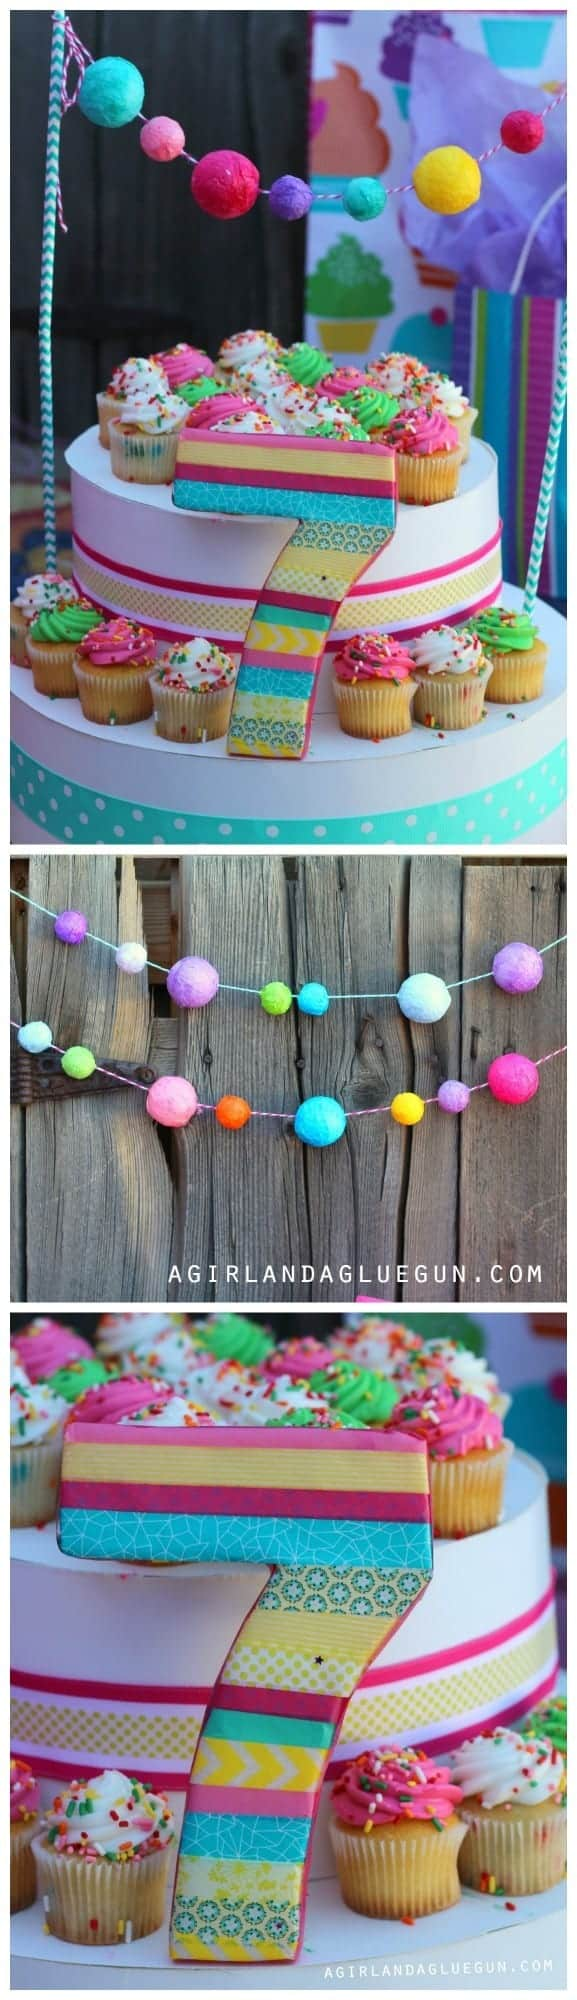 styrofoam-garland-and-cupcake-stand-577x2000